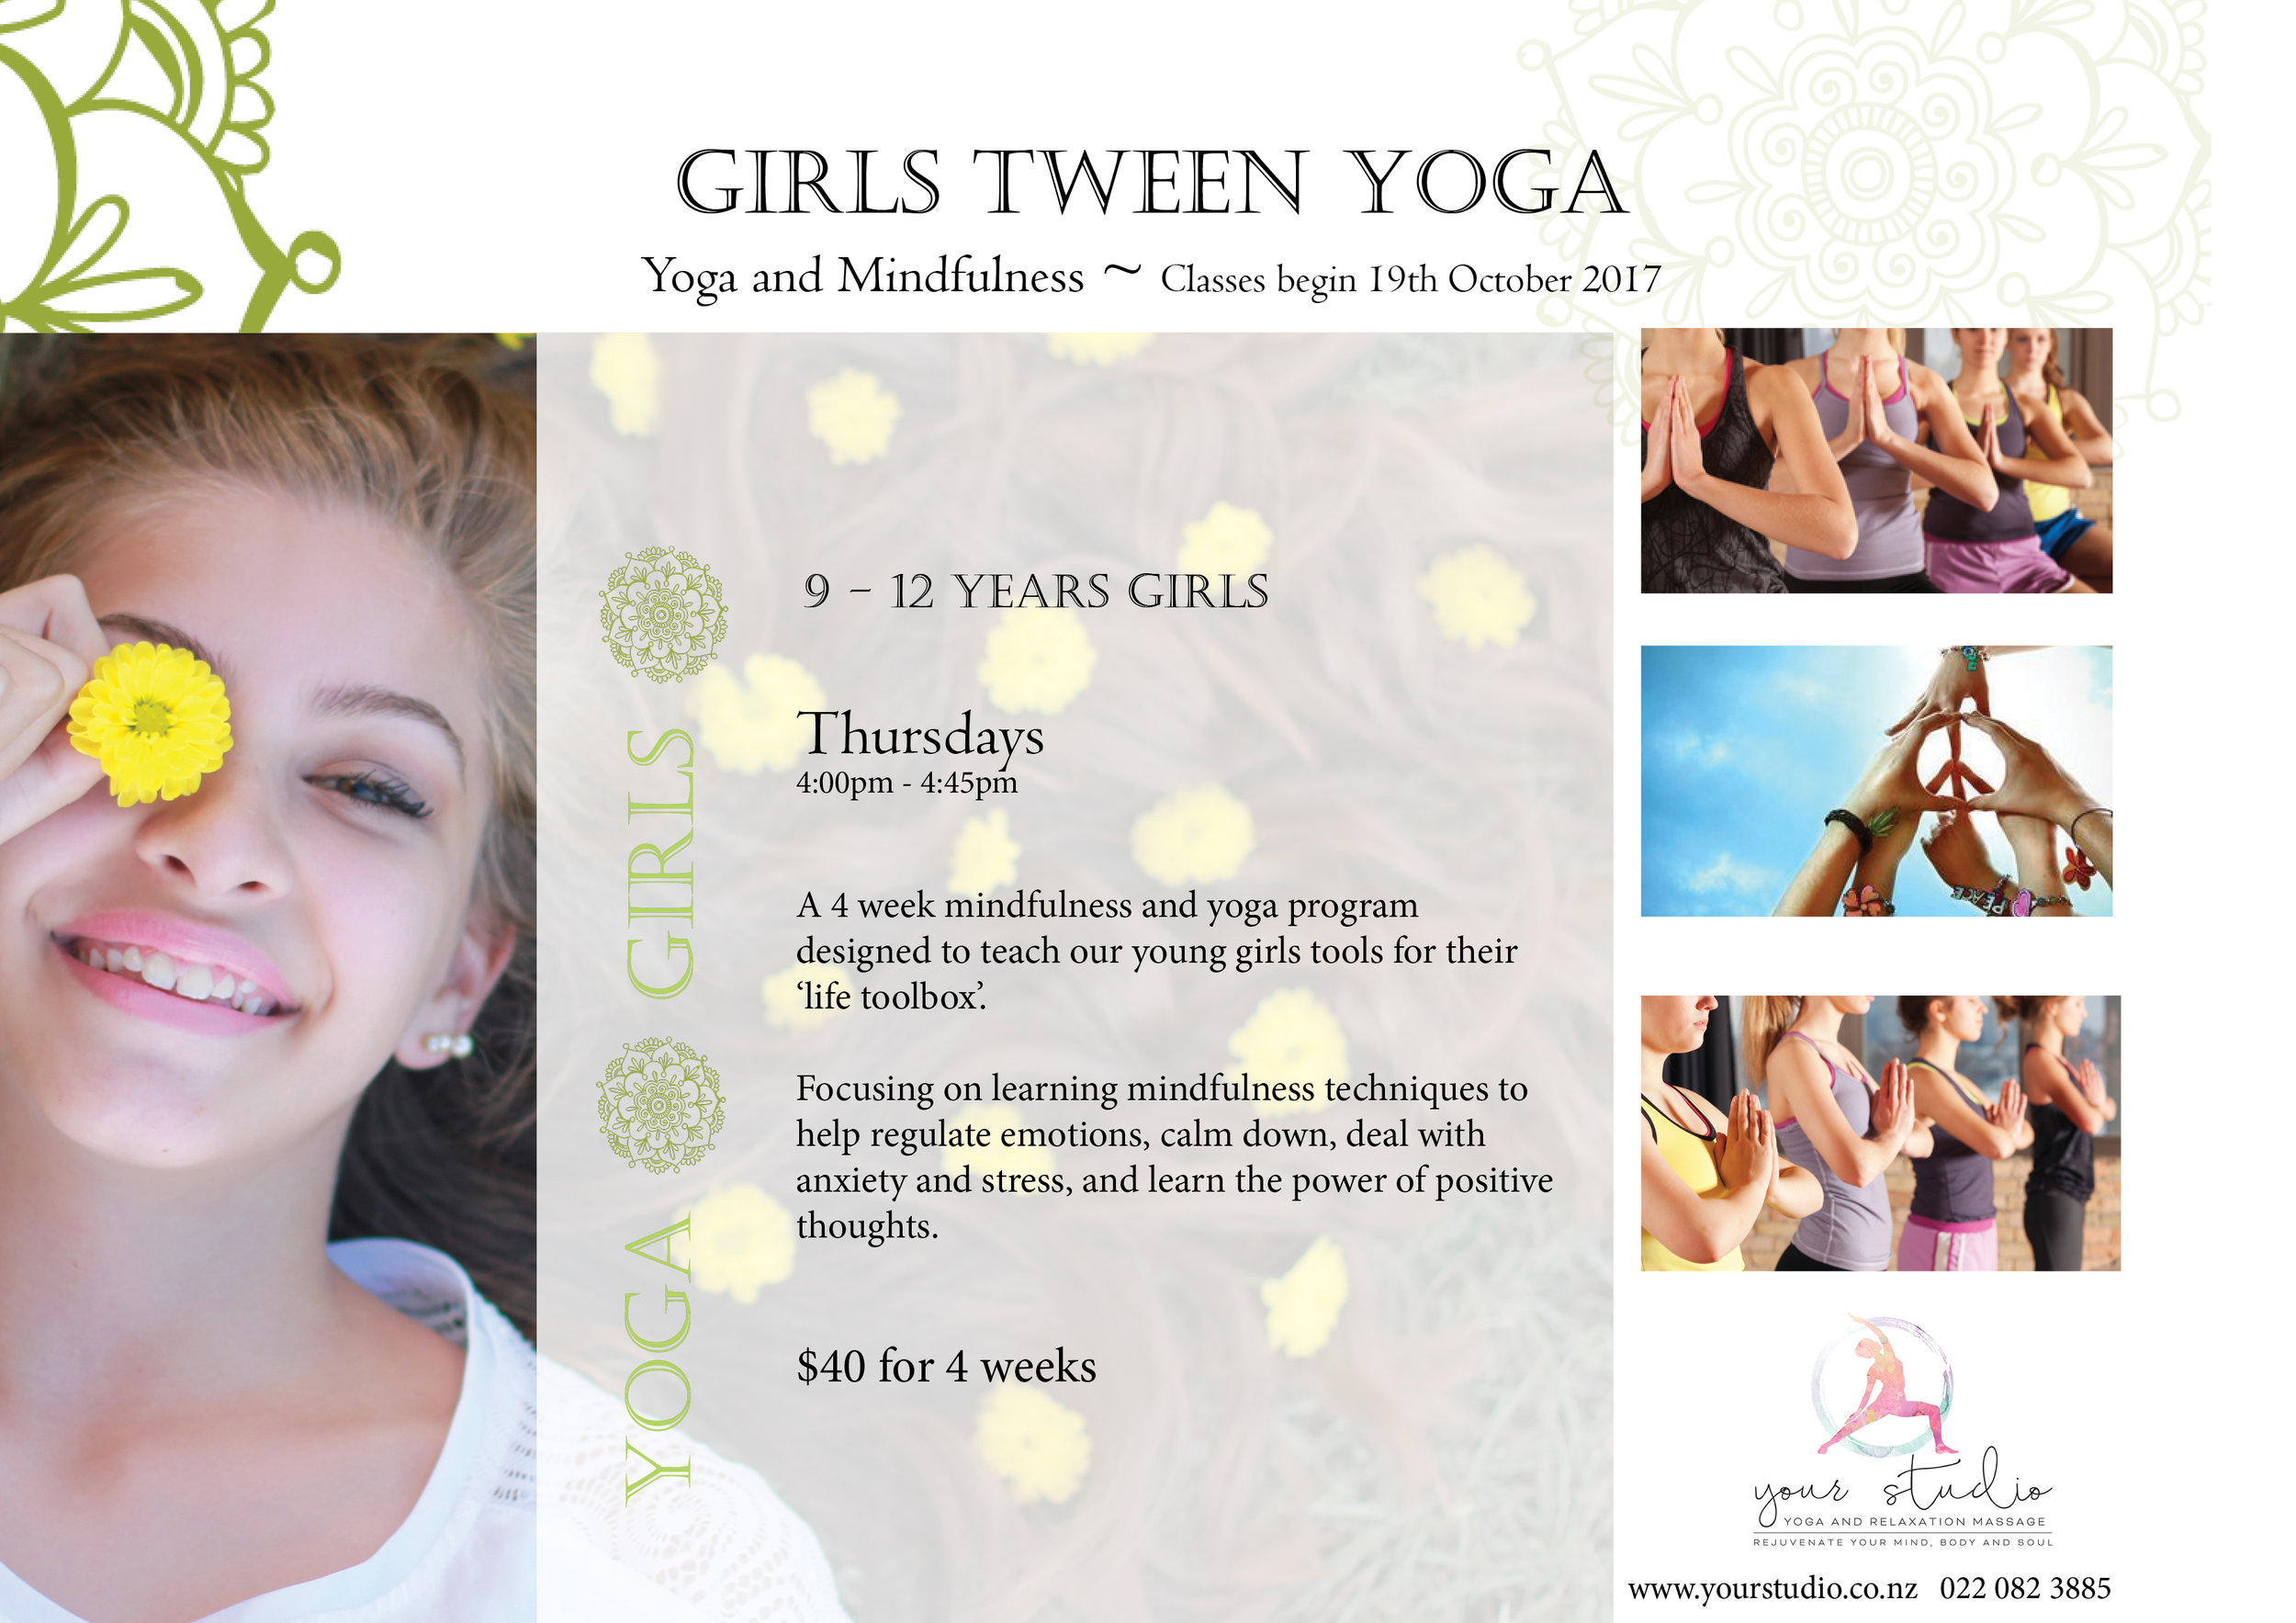 Girl tween yoga Invercargill.jpg